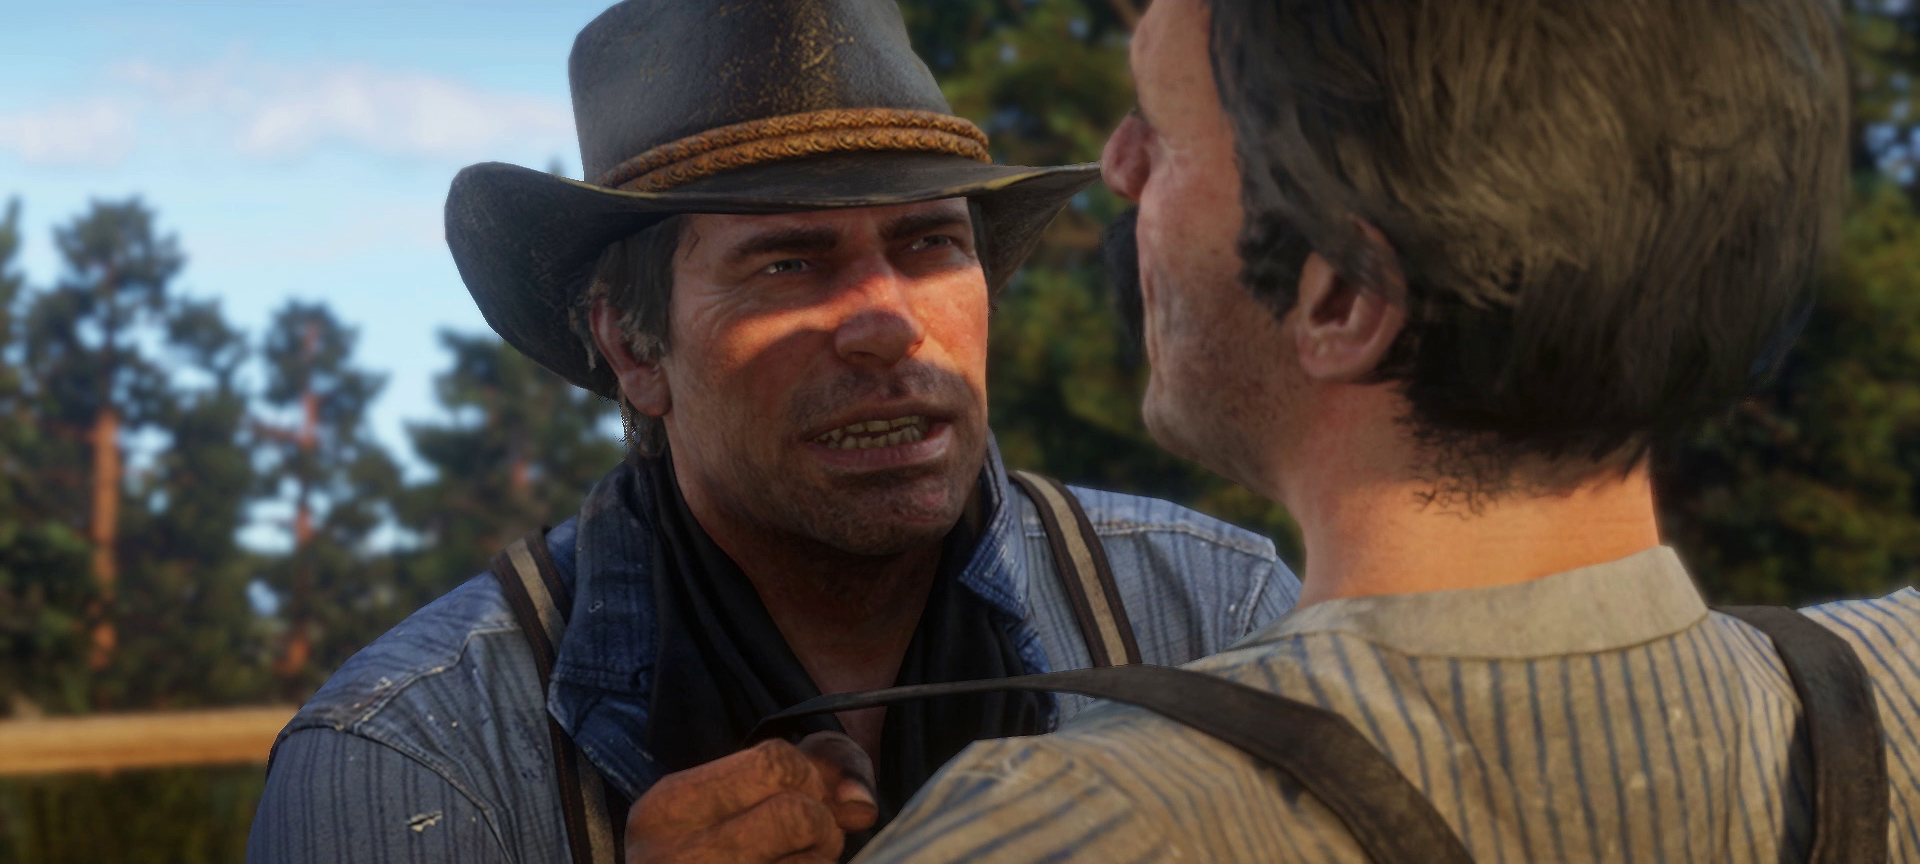 Red Dead Redemption 2 New Trailer Breakdown Featuring John Marston